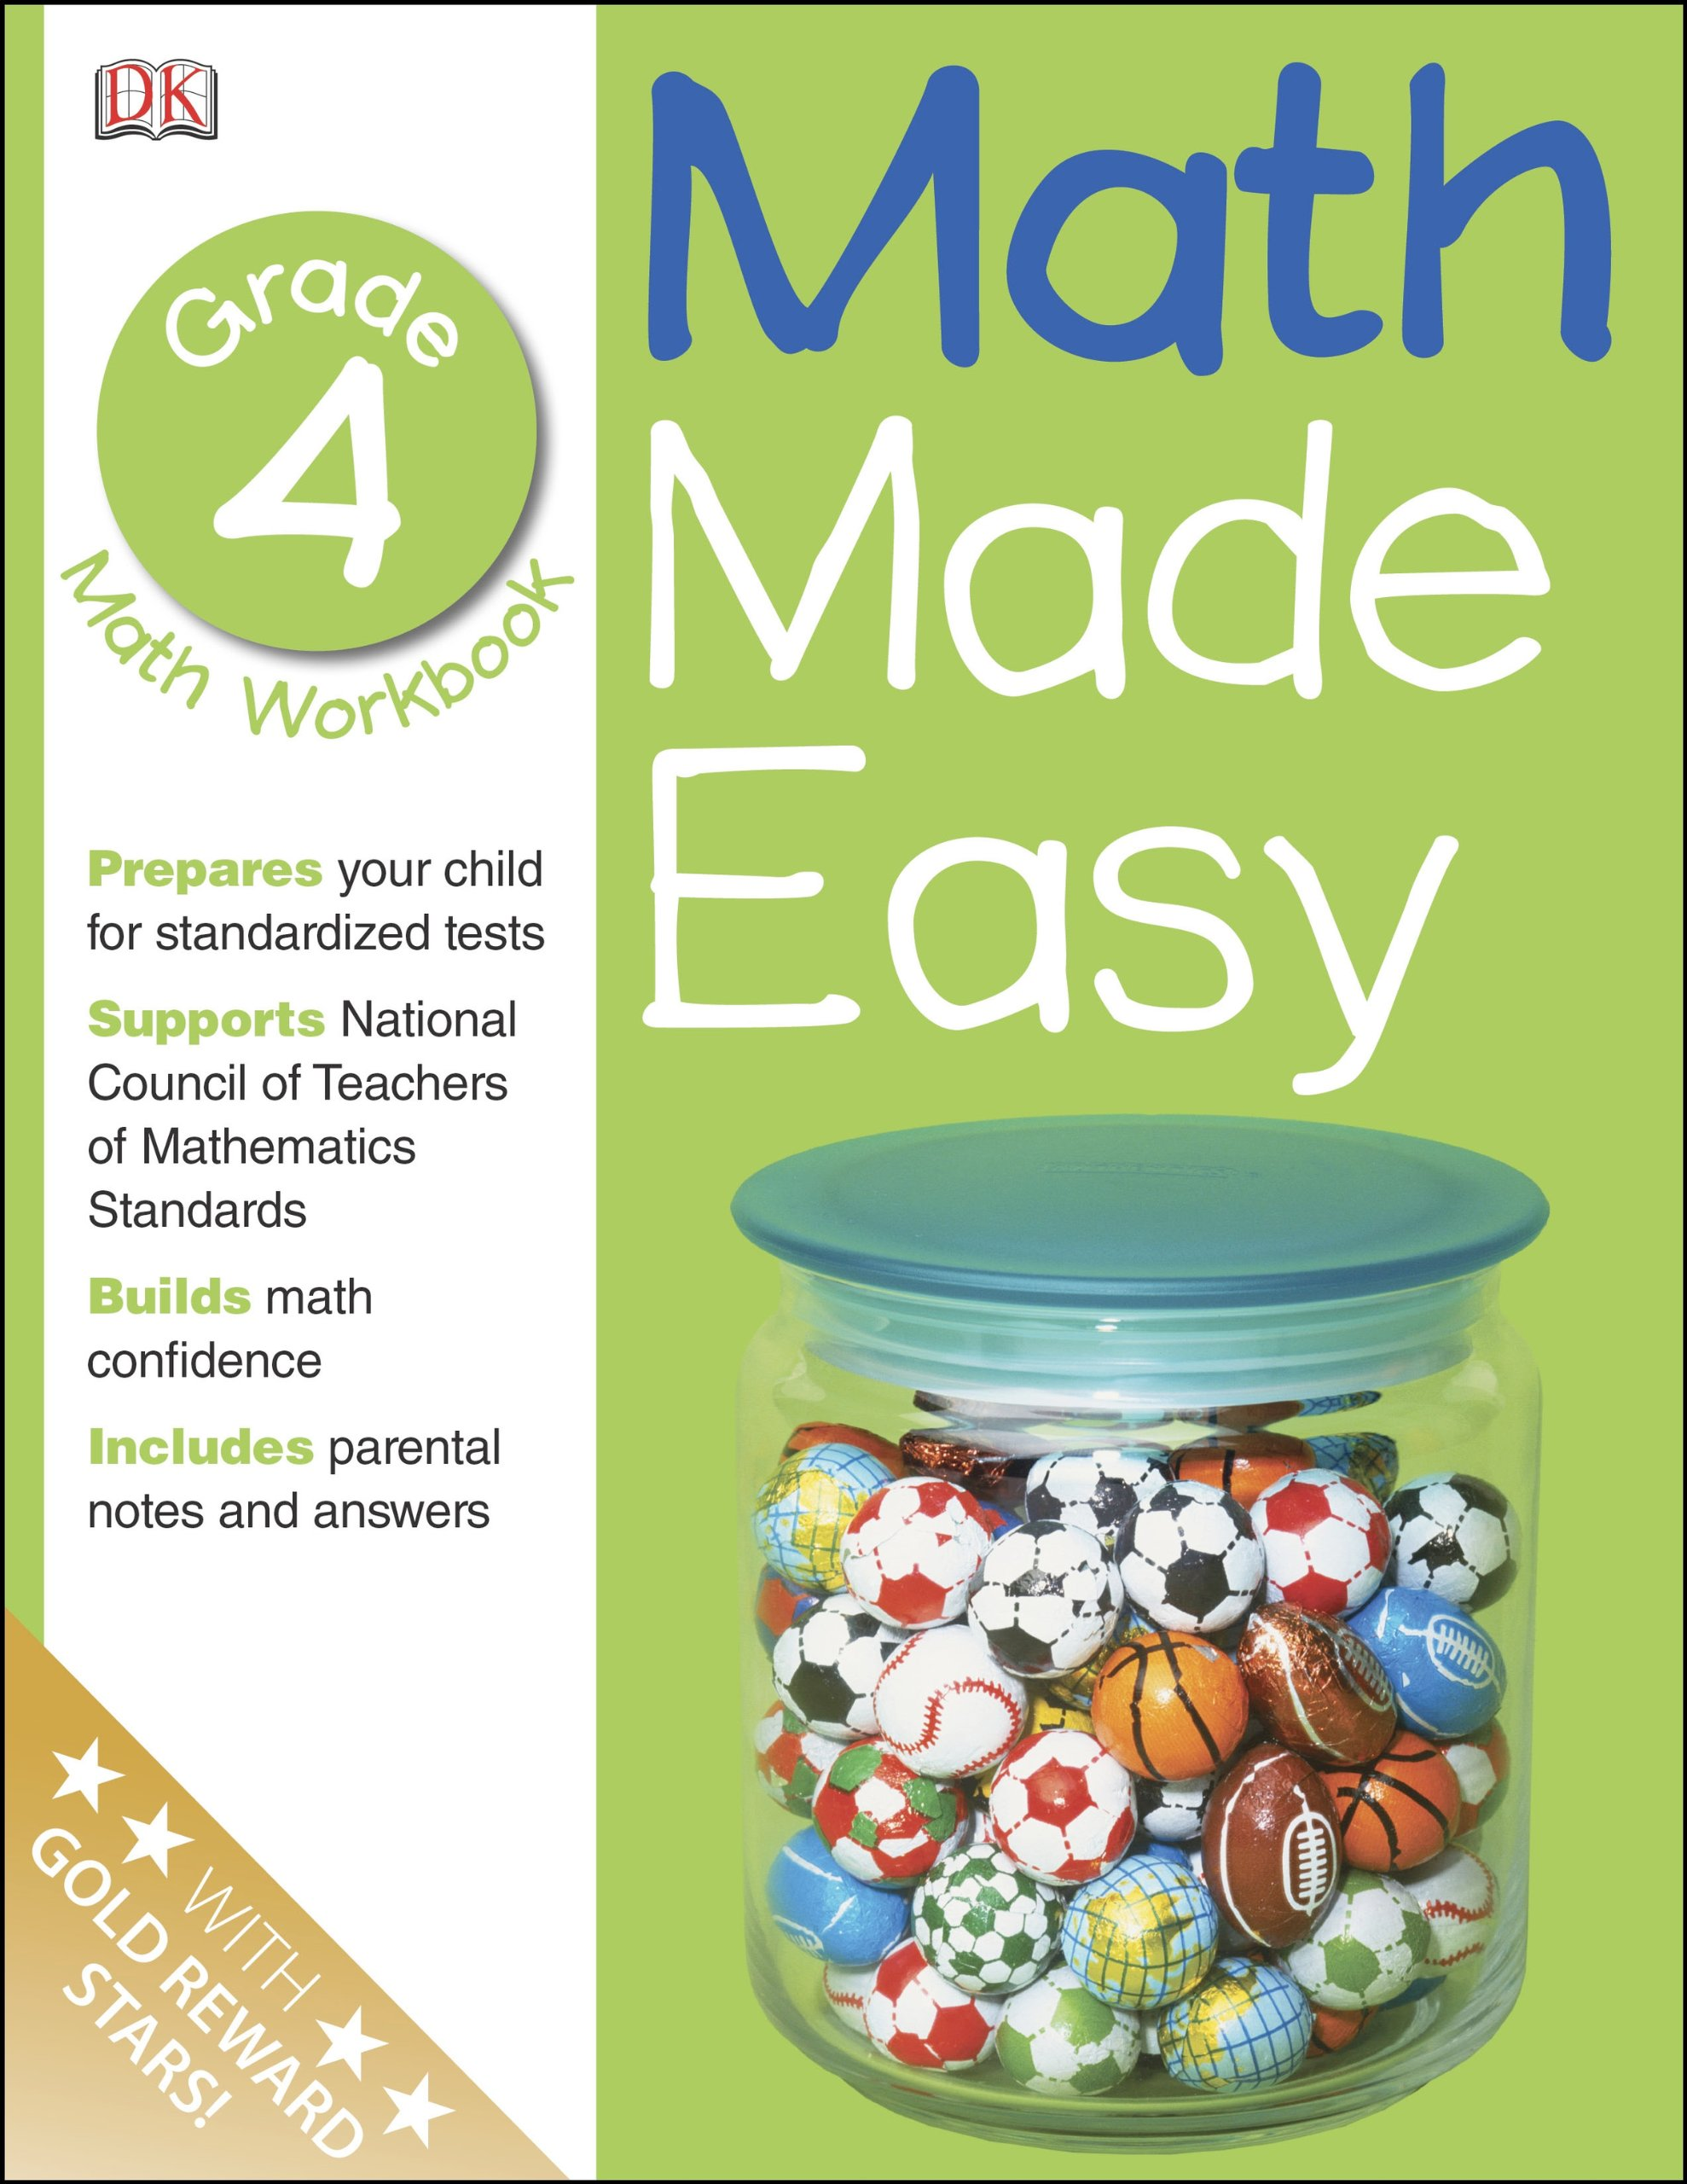 Worksheet Fourth Grade Math Books math made easy fourth grade workbook dk 9780789457356 amazon com books